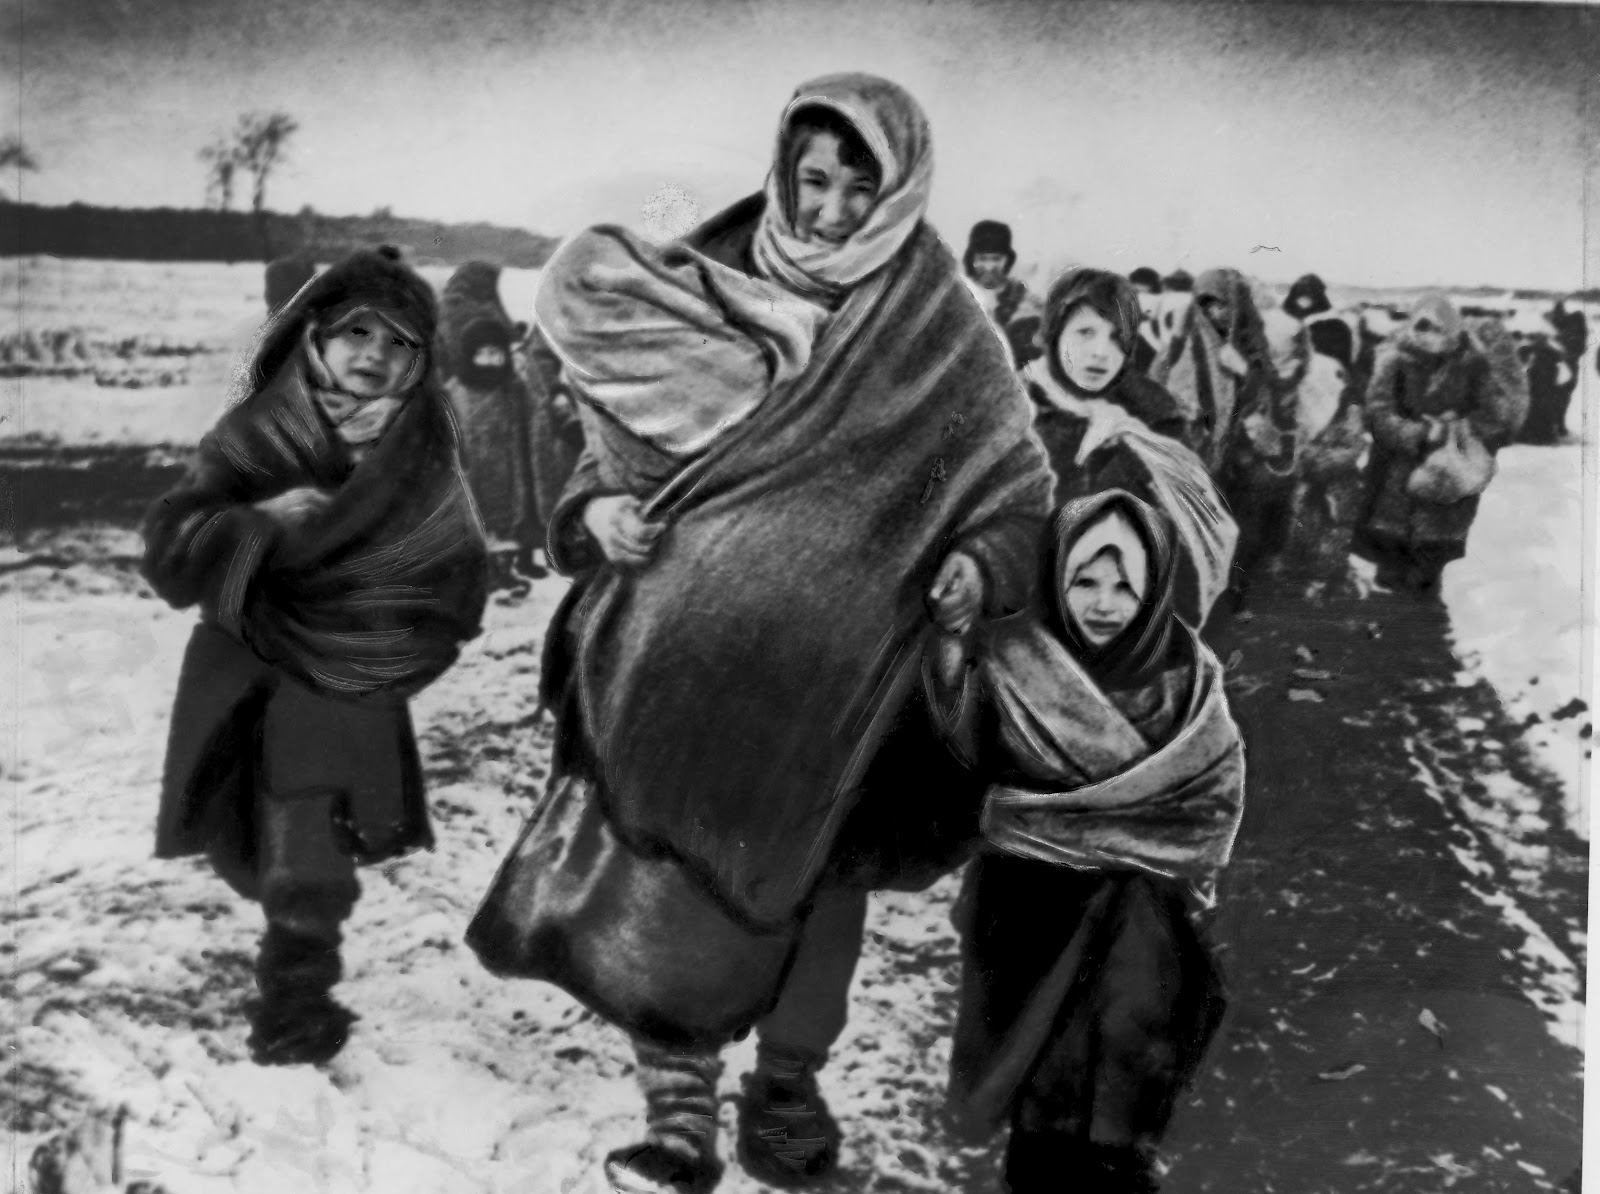 disabled world war ii and refugee World war ii was the biggest story of the 20th century, and its aftermath continues to affect the world profoundly more than 65 years later (this entry is part 20 of a weekly 20-part.